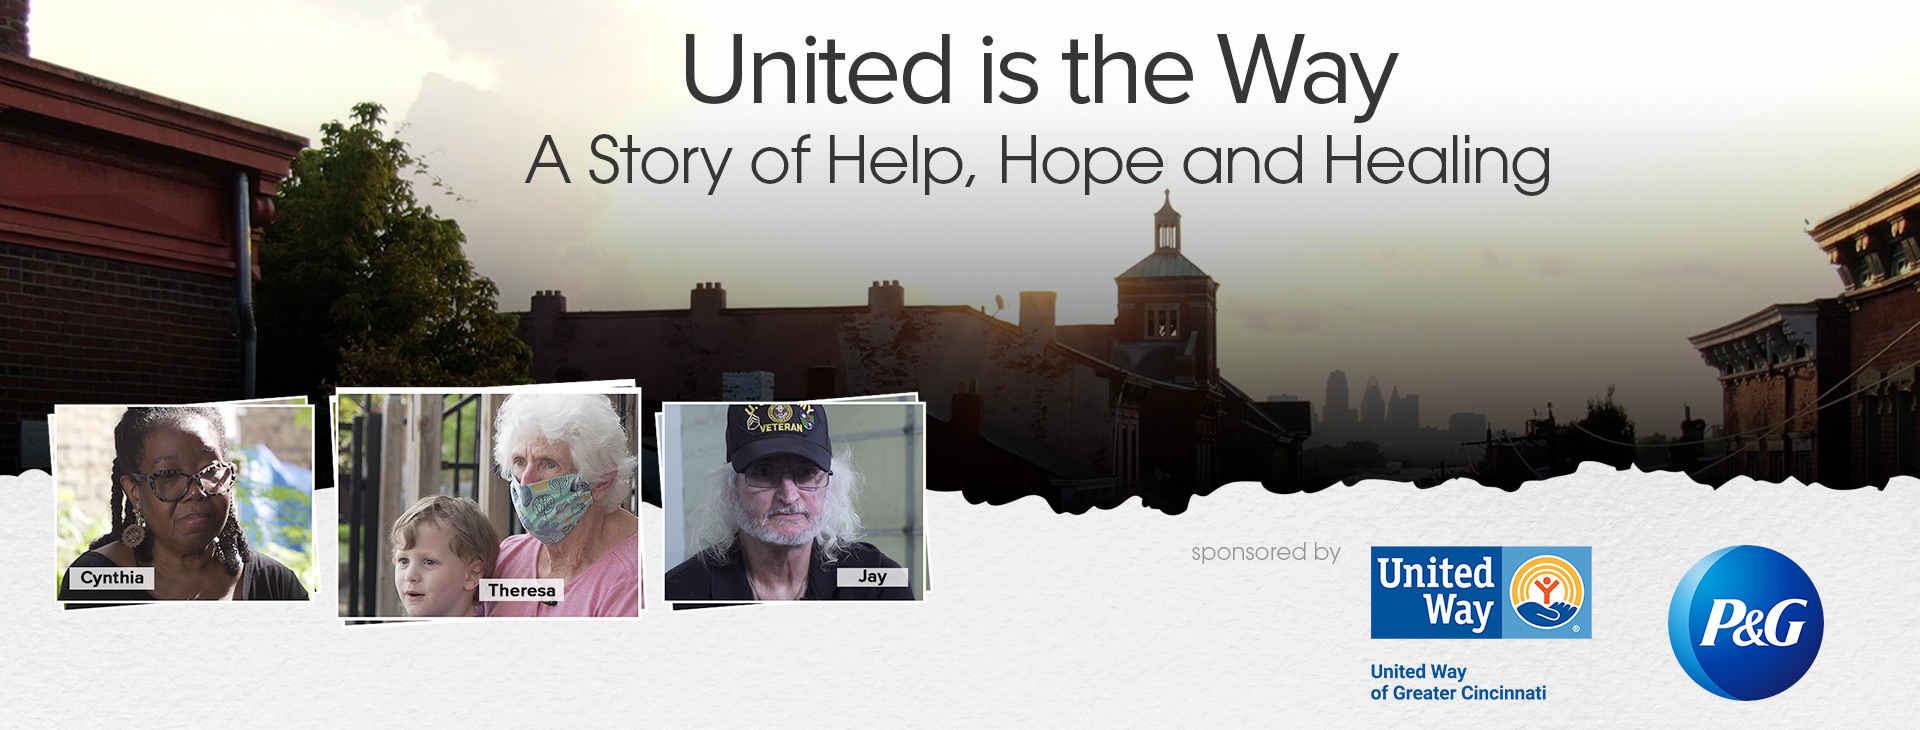 United Is The Way: A Story of Help, Hope and Healing.